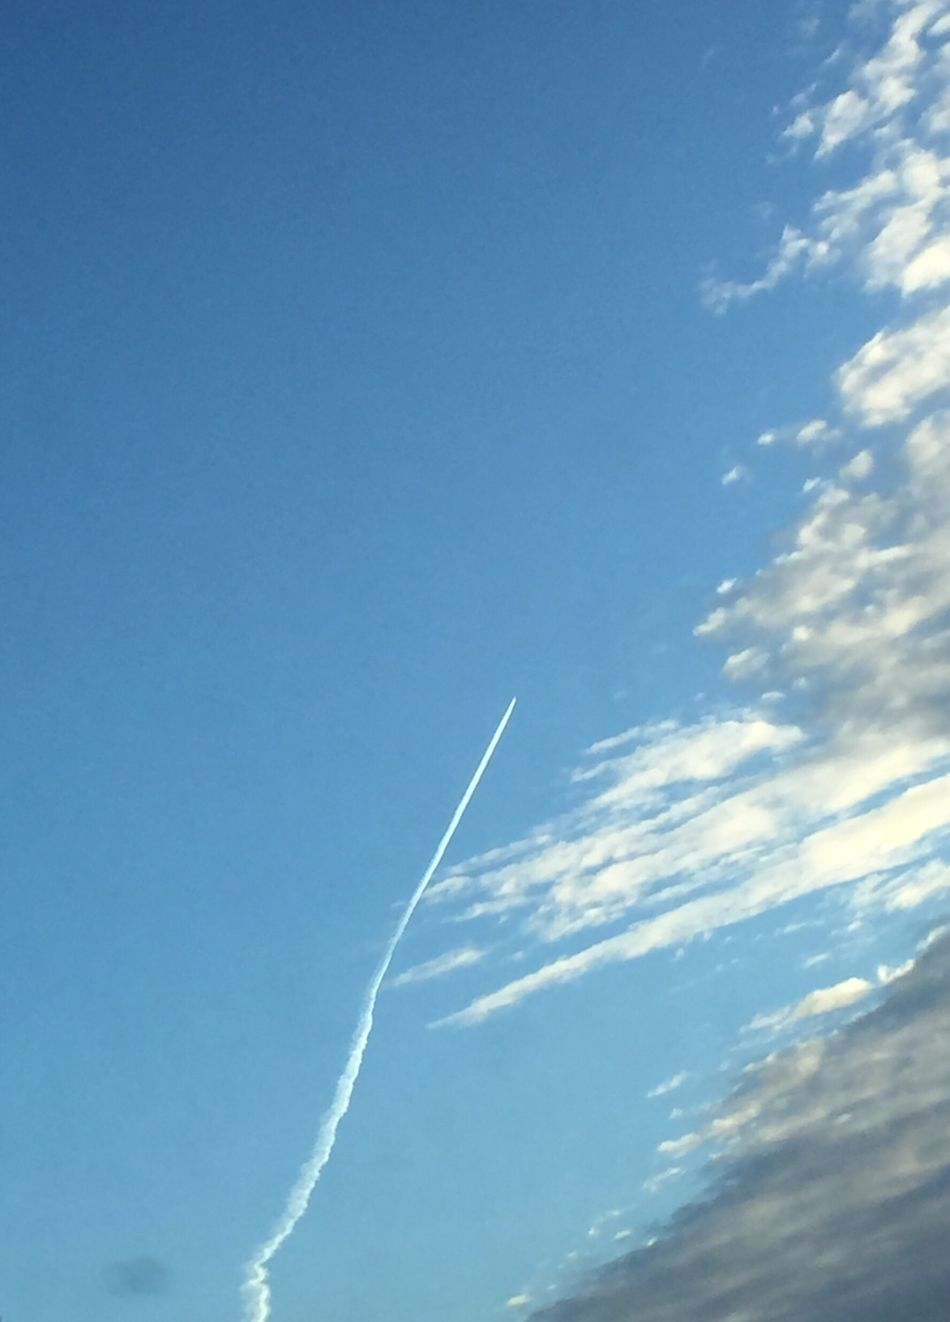 Vapor Trail Blue Contrail White Low Angle View Sky No People Airplane Day Nature Scenics Outdoors Air Vehicle